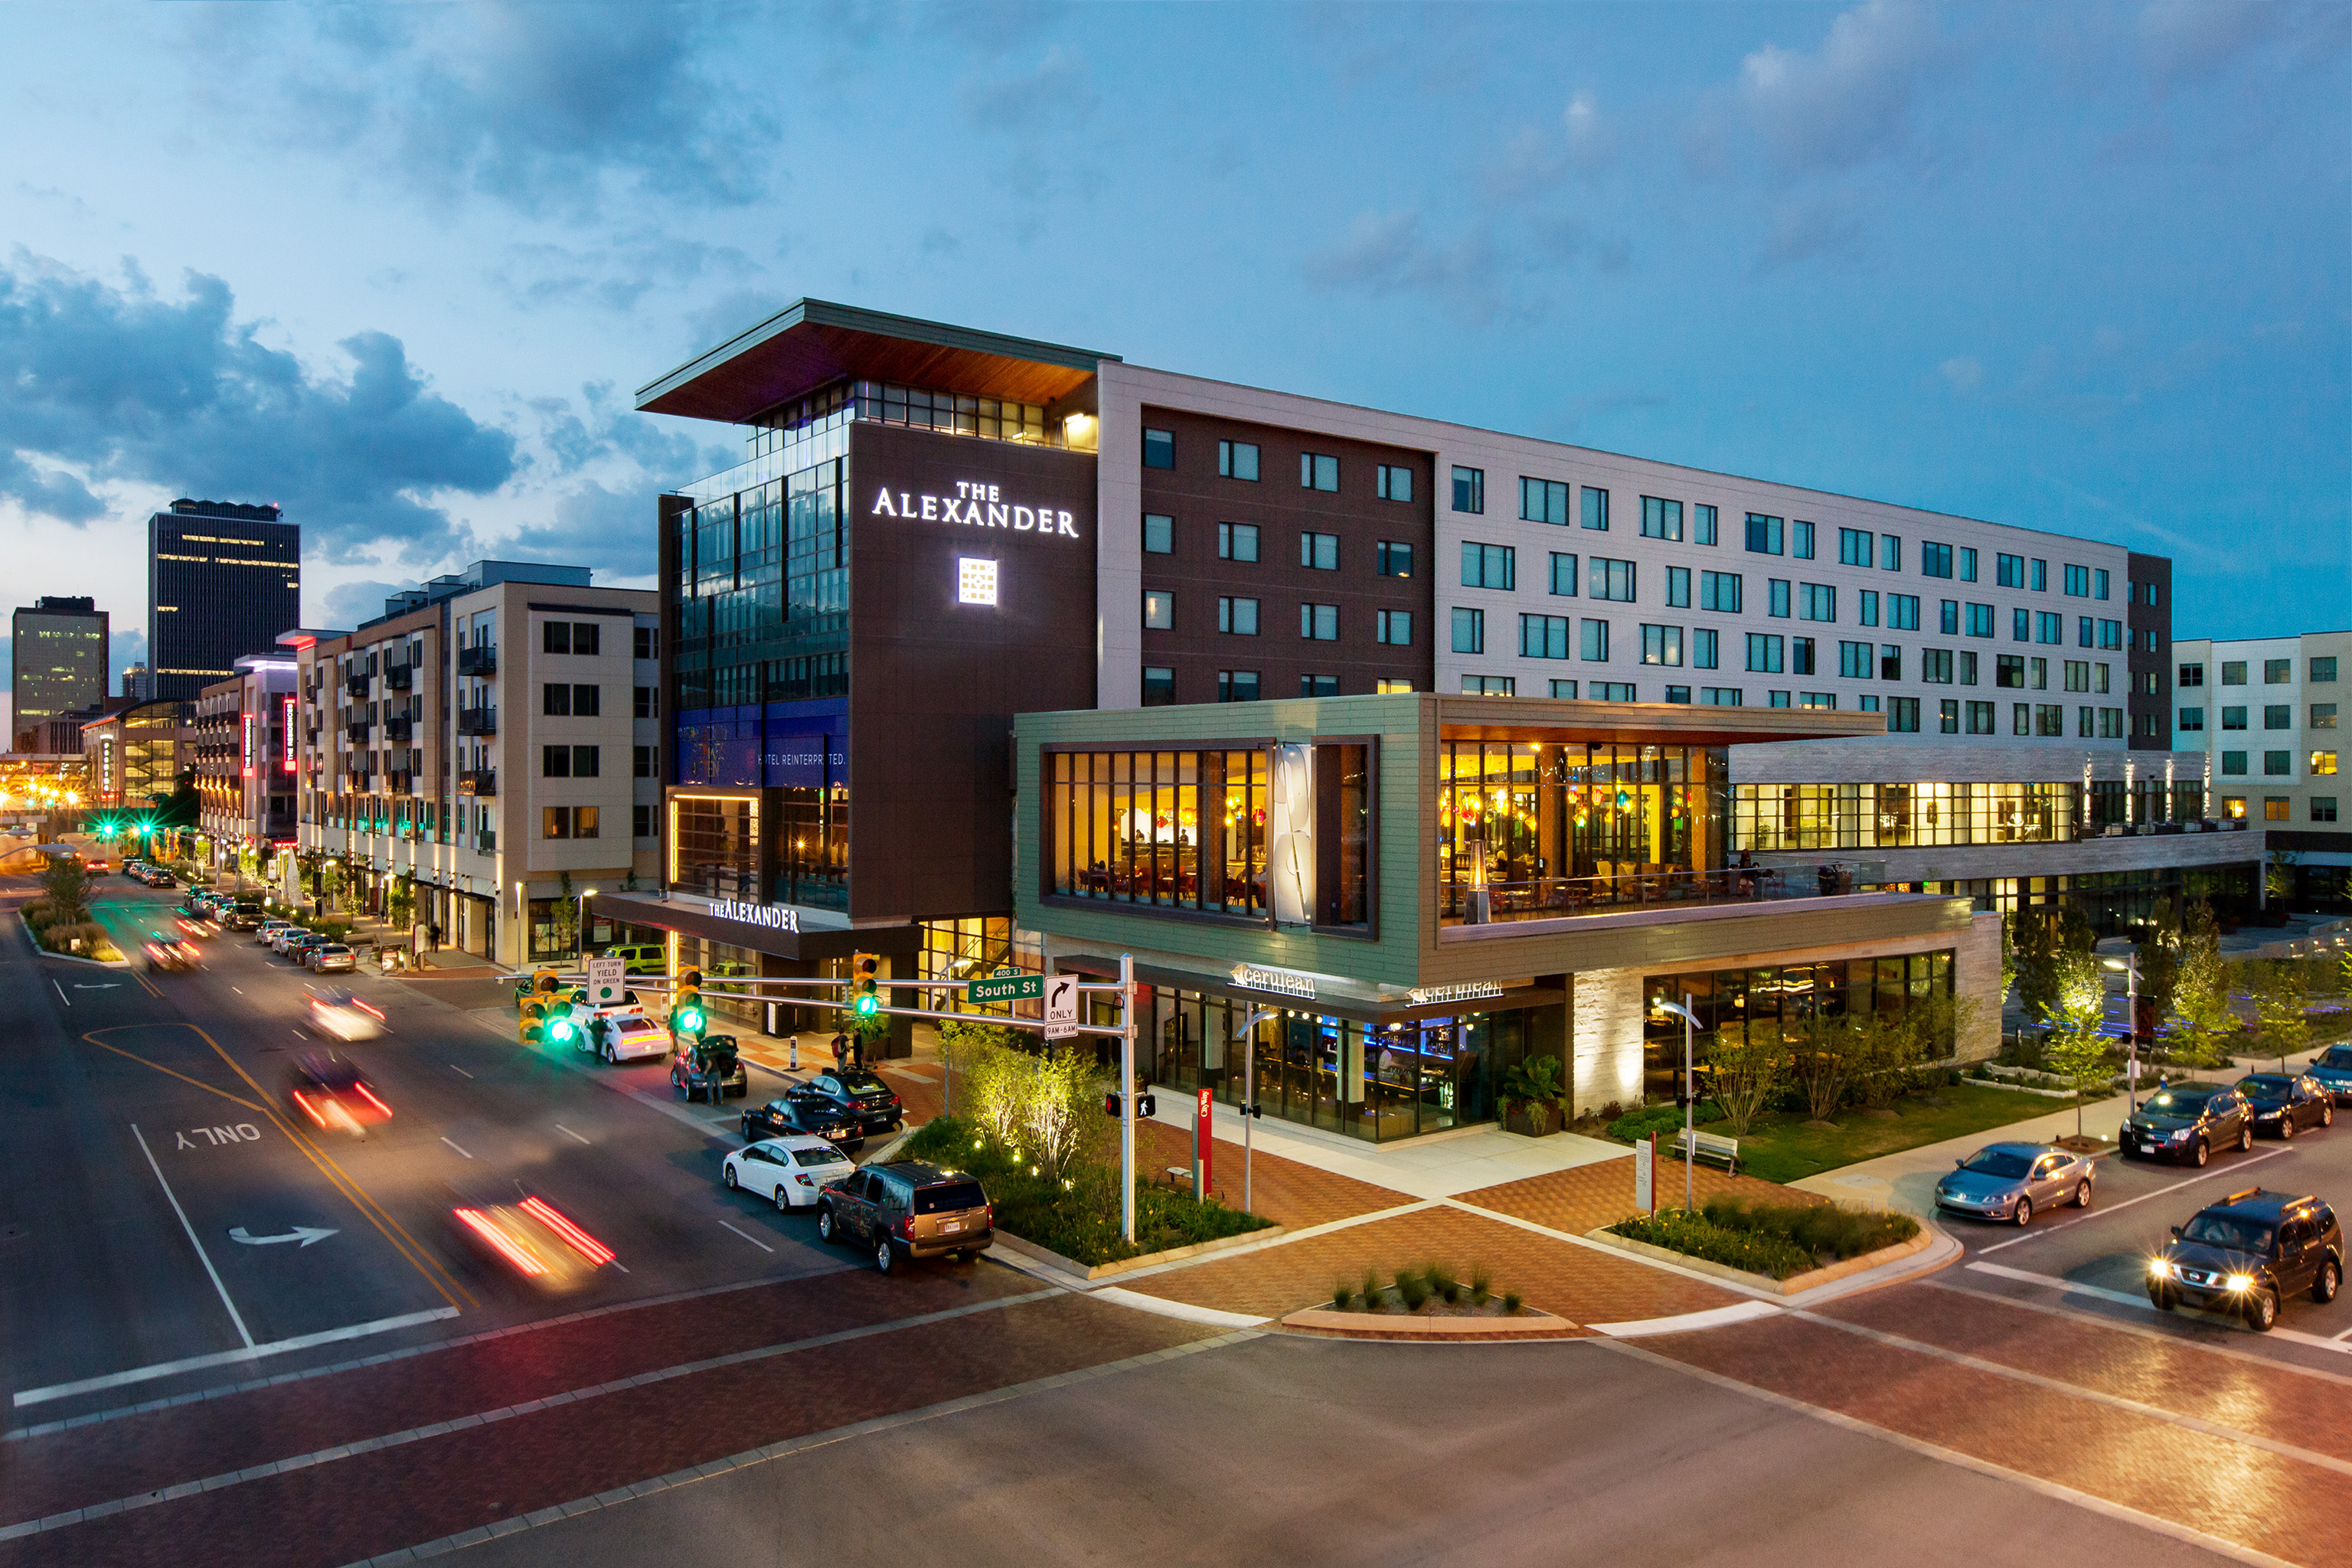 The Alexander Hotel located in Indianapolis